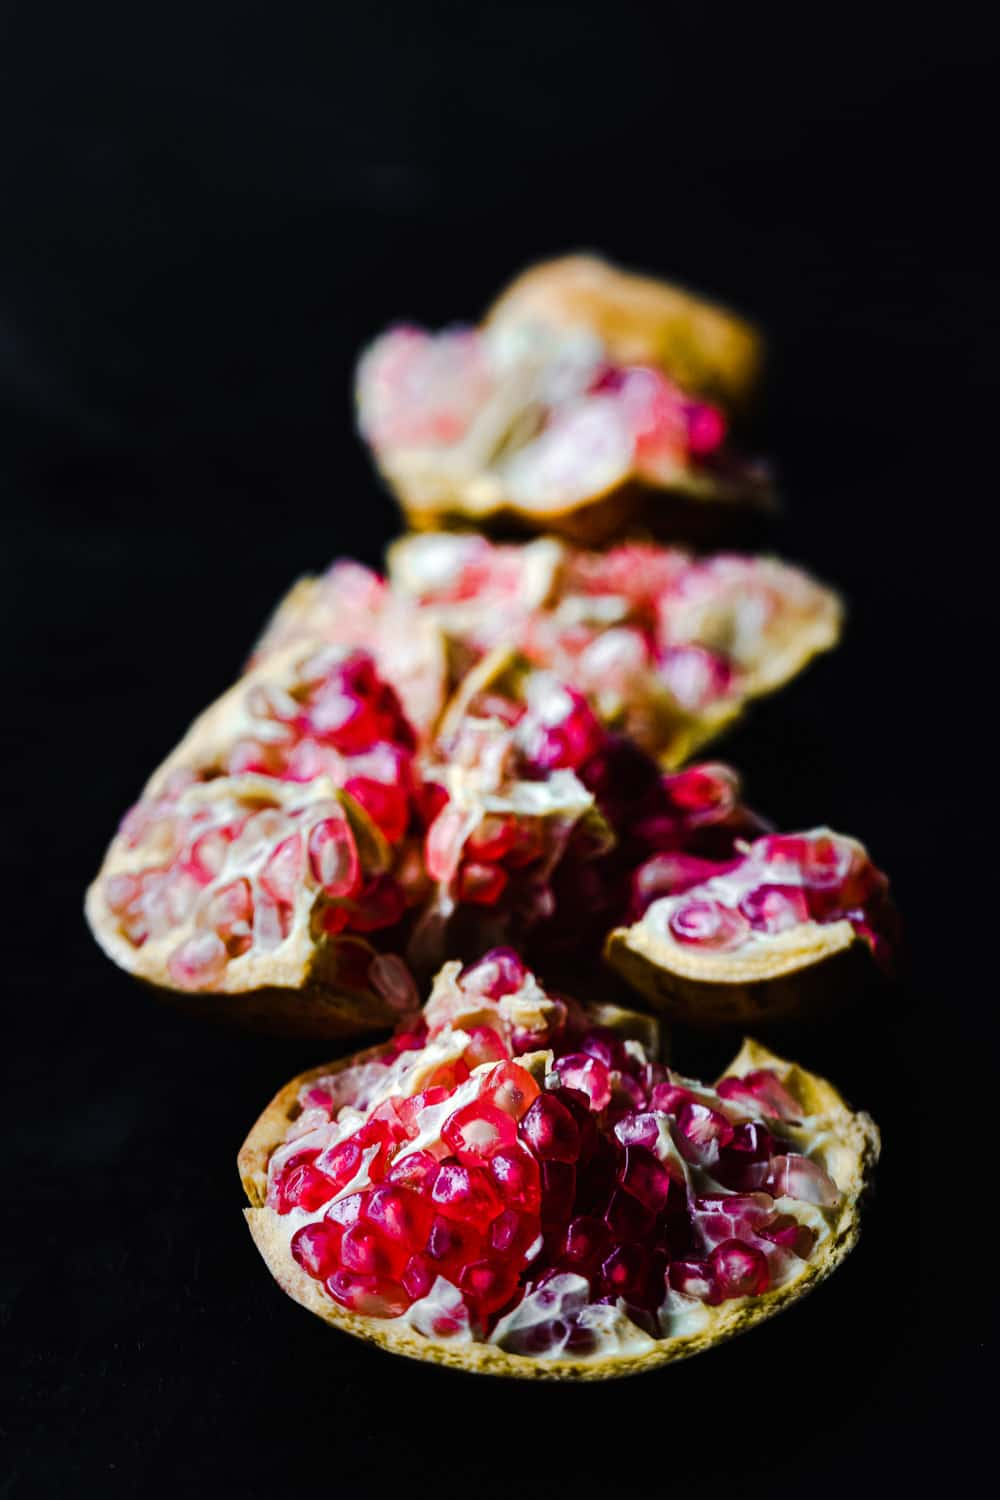 Side angle shot of a white pomegranate cut into pieces with the pink arils exposed, on a black background.